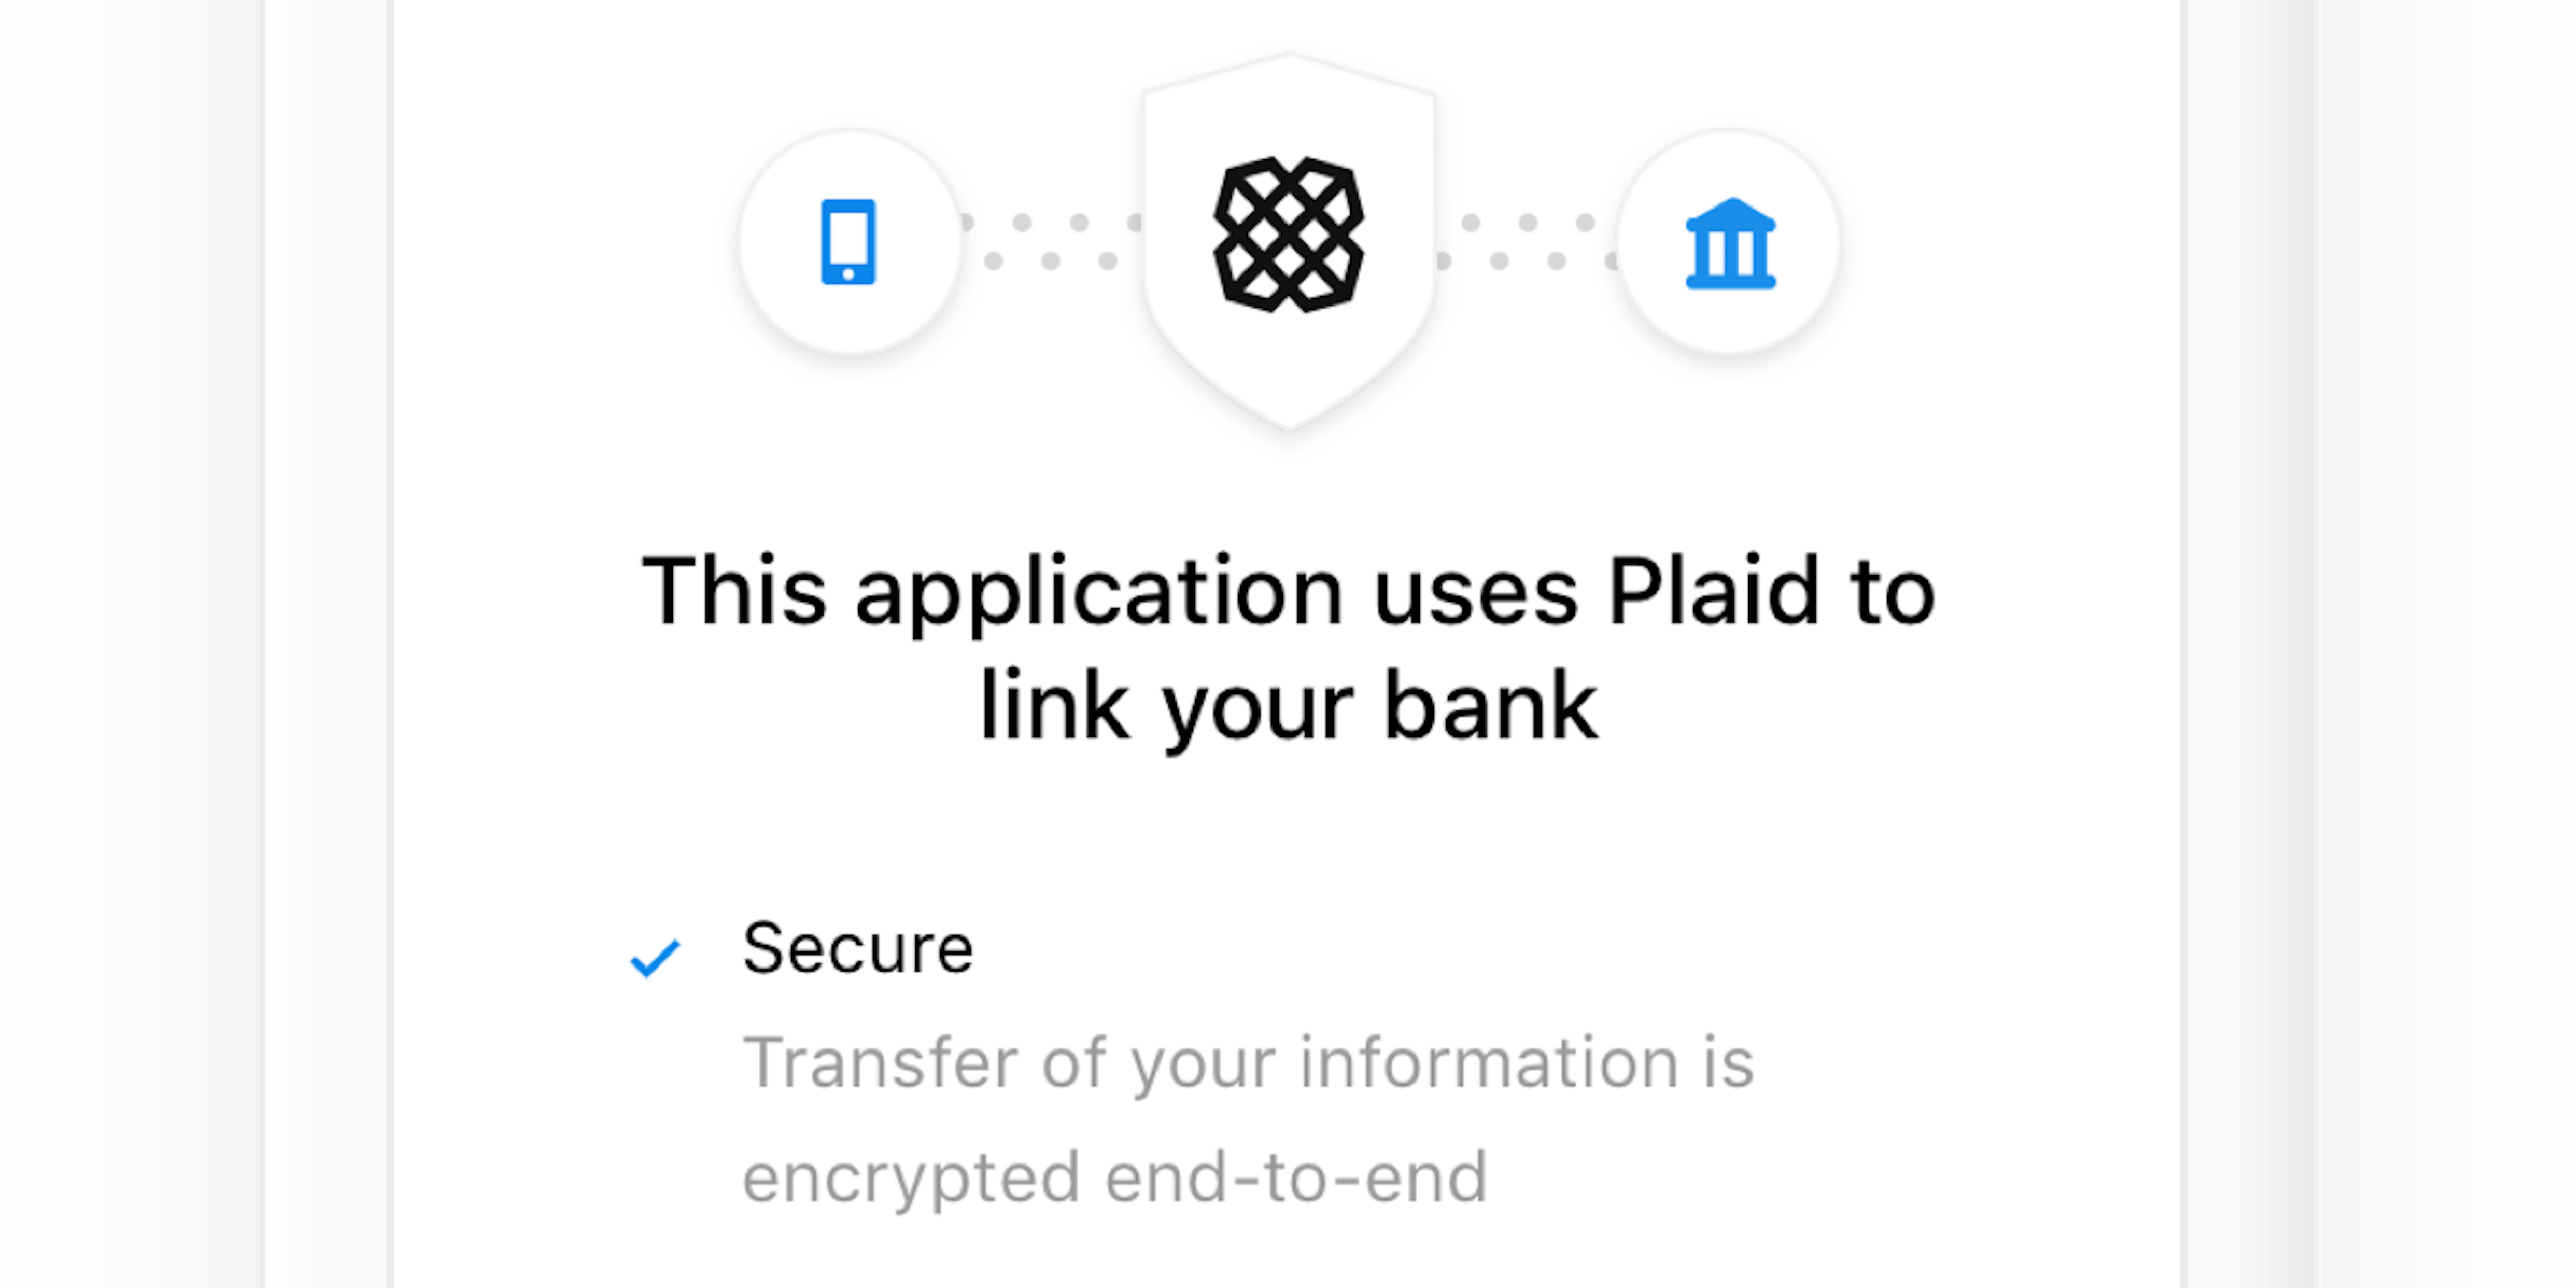 Illustration of Plad logo with mobile device to the left and bank to the right